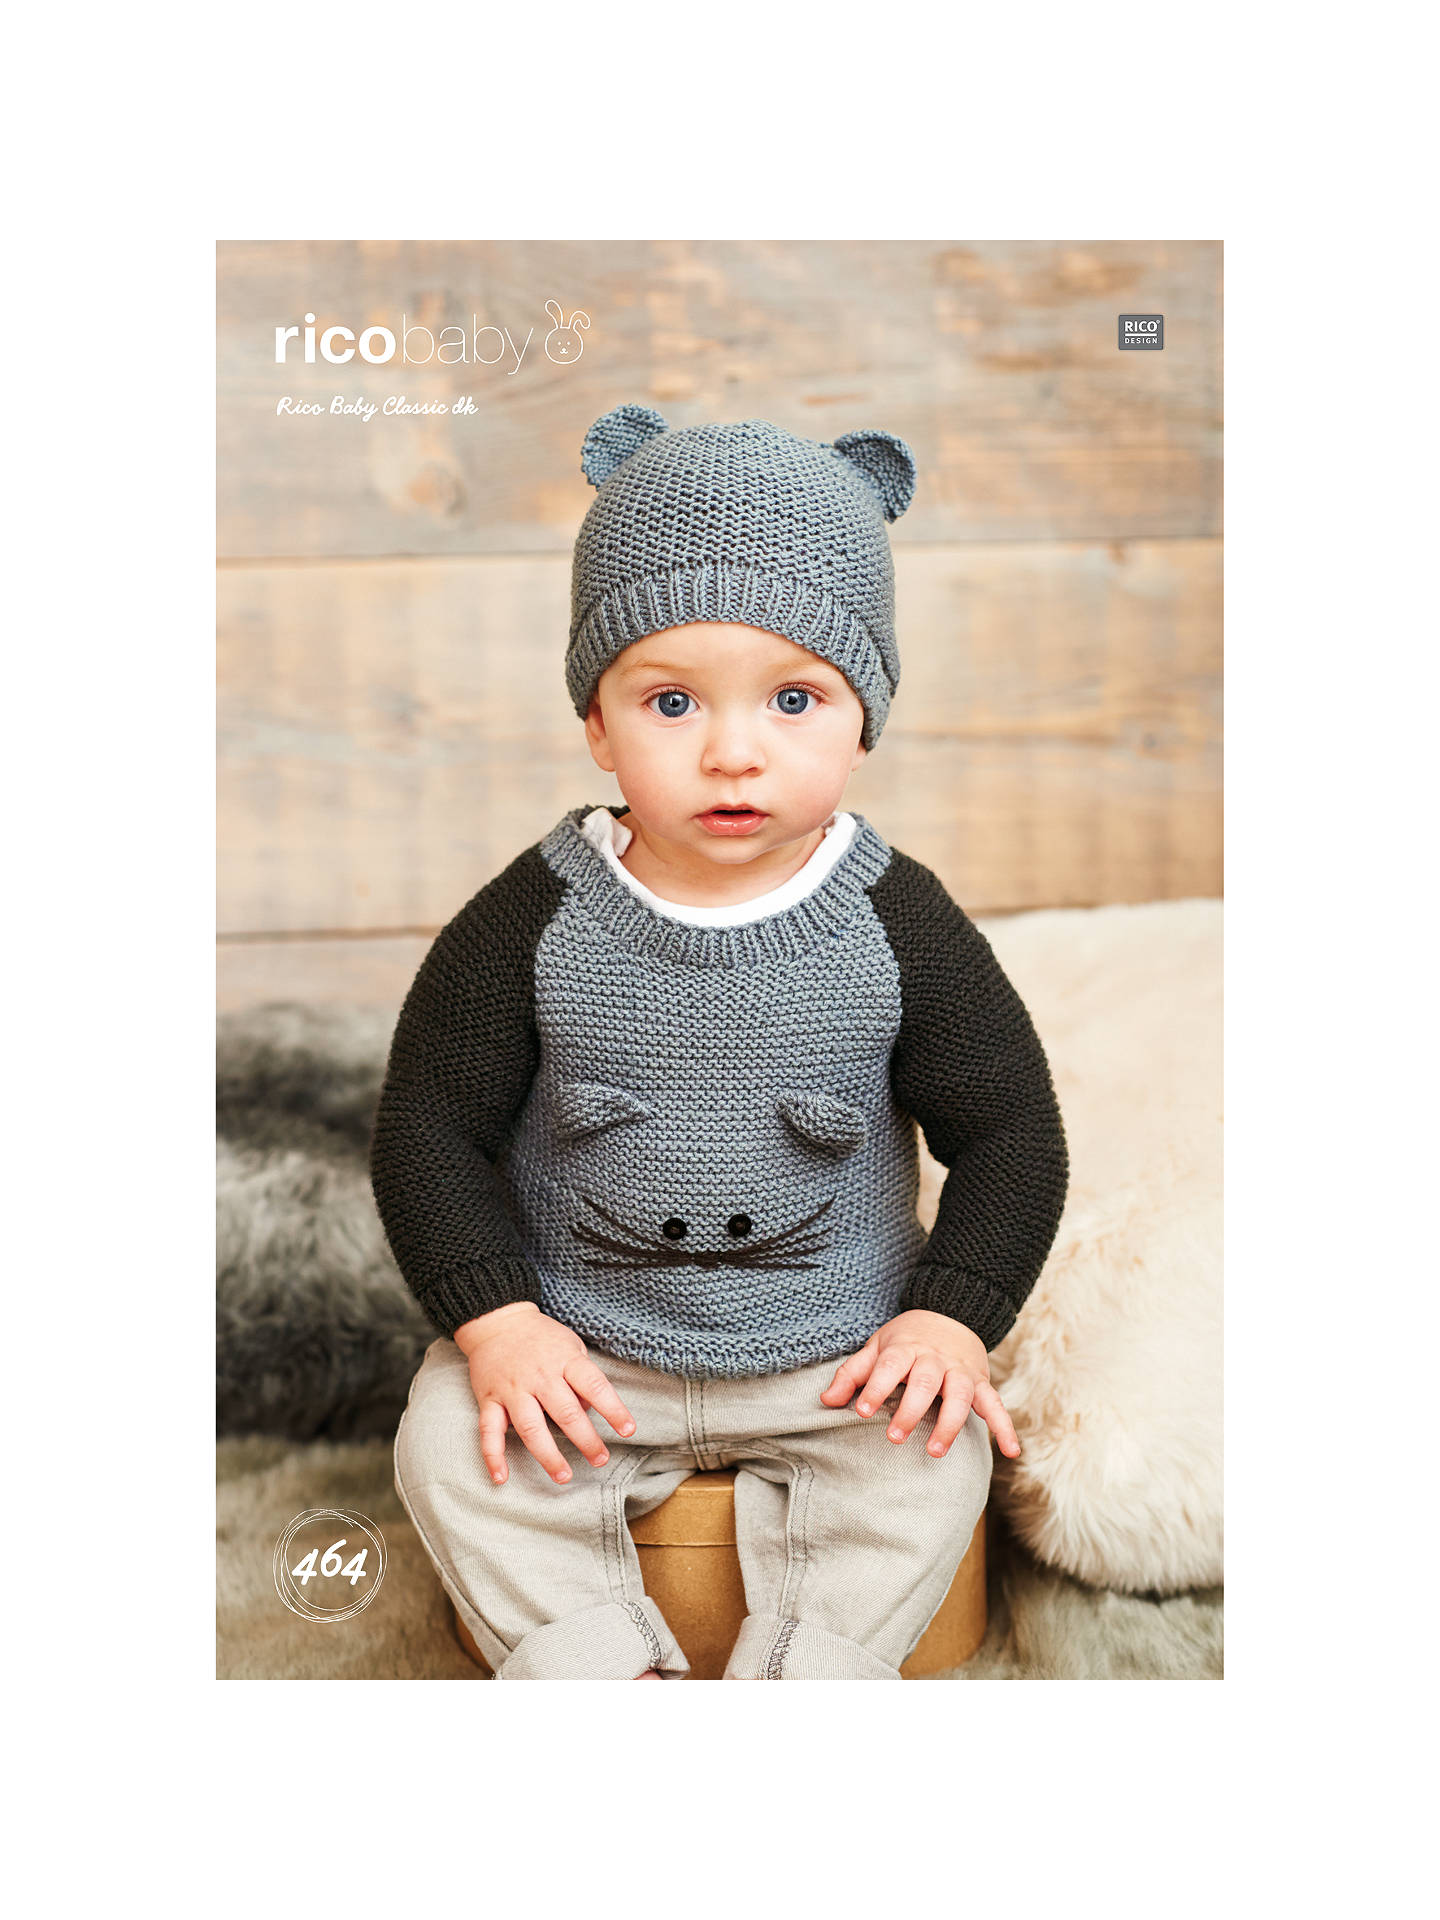 73316ebb3ce Rico Baby Classic DK Baby Jumper and Hat Knitting Pattern, 464